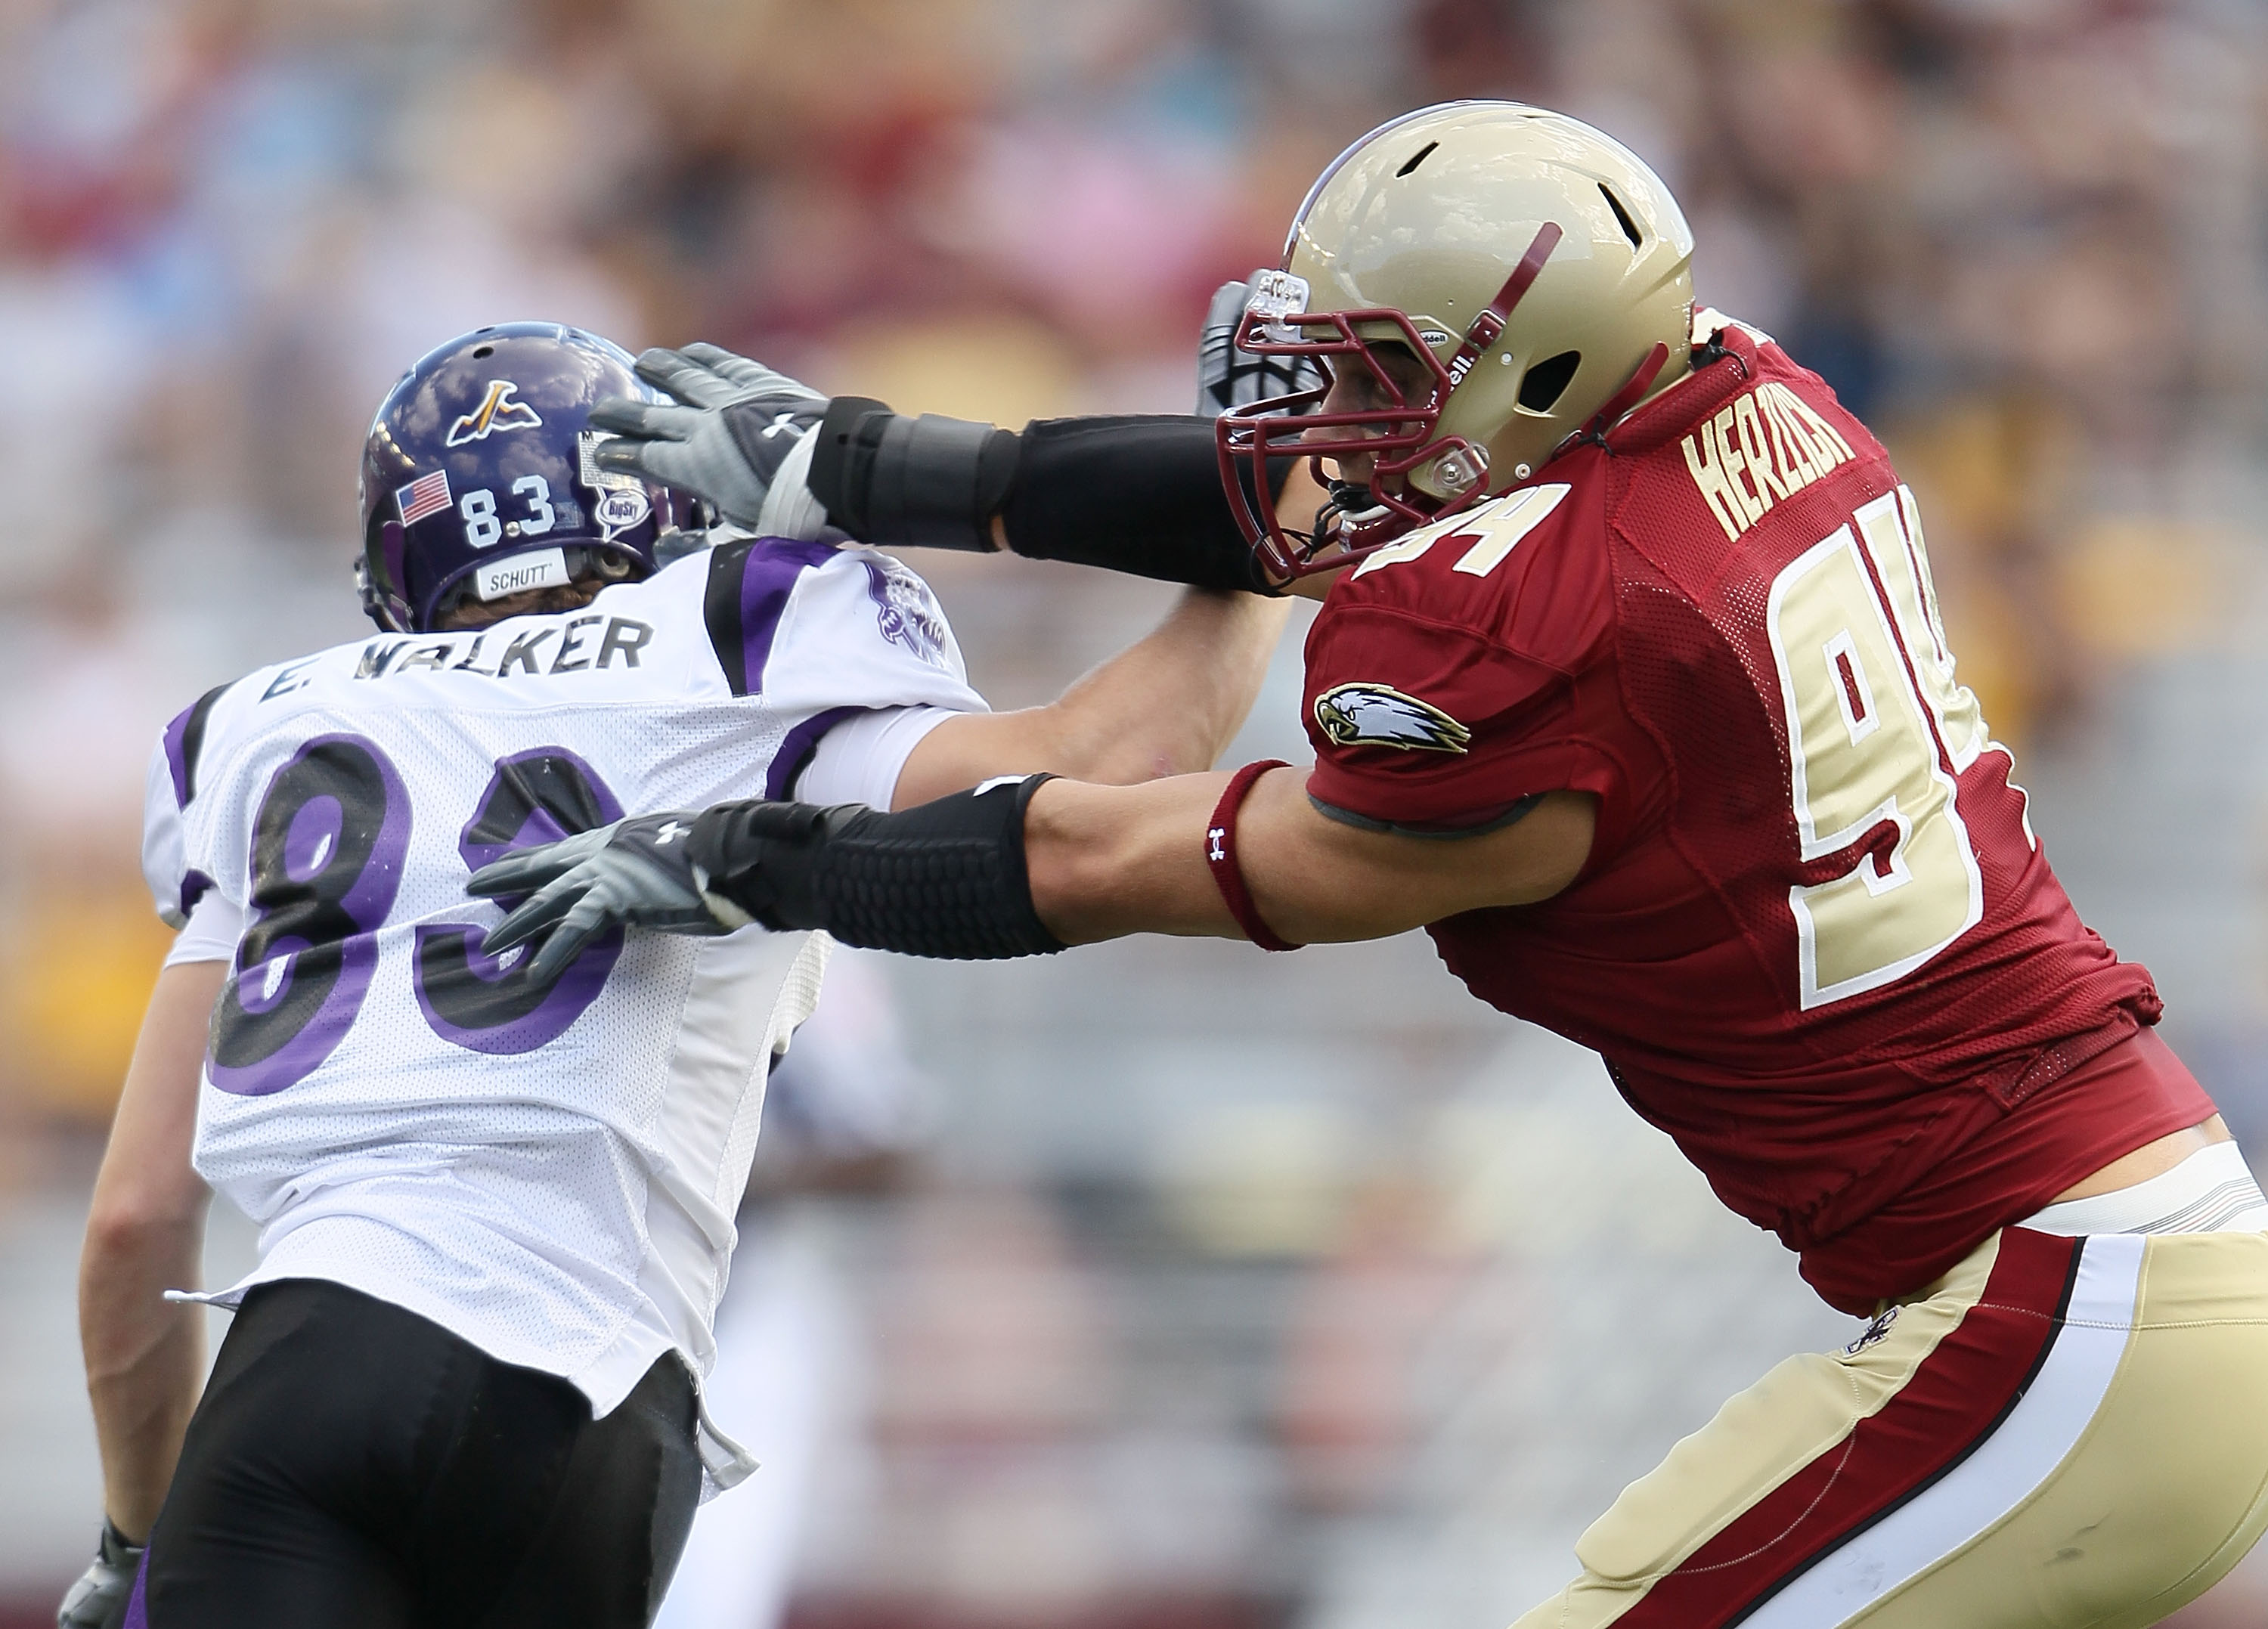 CHESTNUT HILL, MA - SEPTEMBER 04:  Mark Herzlich #94 of the Boston College Eagles blocks Erik Walker #83 of the Weber State Wildcats on September 4, 2010 at Alumni Stadium in Chestnut Hill, Massachusetts. Boston College defeated Weber State 38-20.  (Photo